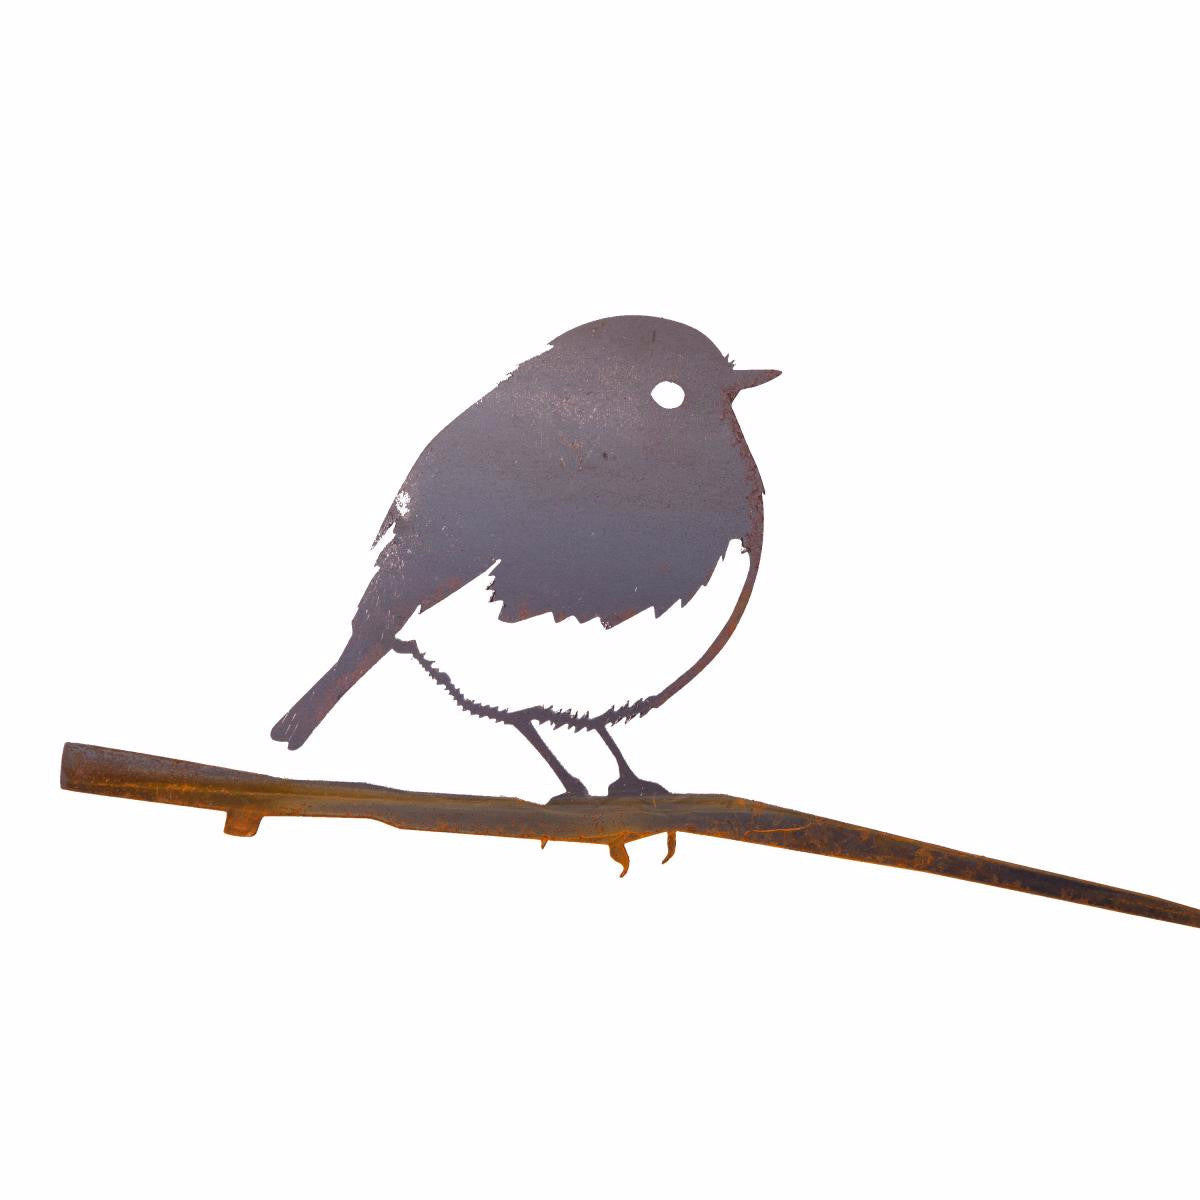 Metalbird - Robin - Metalbird - Throw Some Seeds - Australian gardening gifts and eco products online!